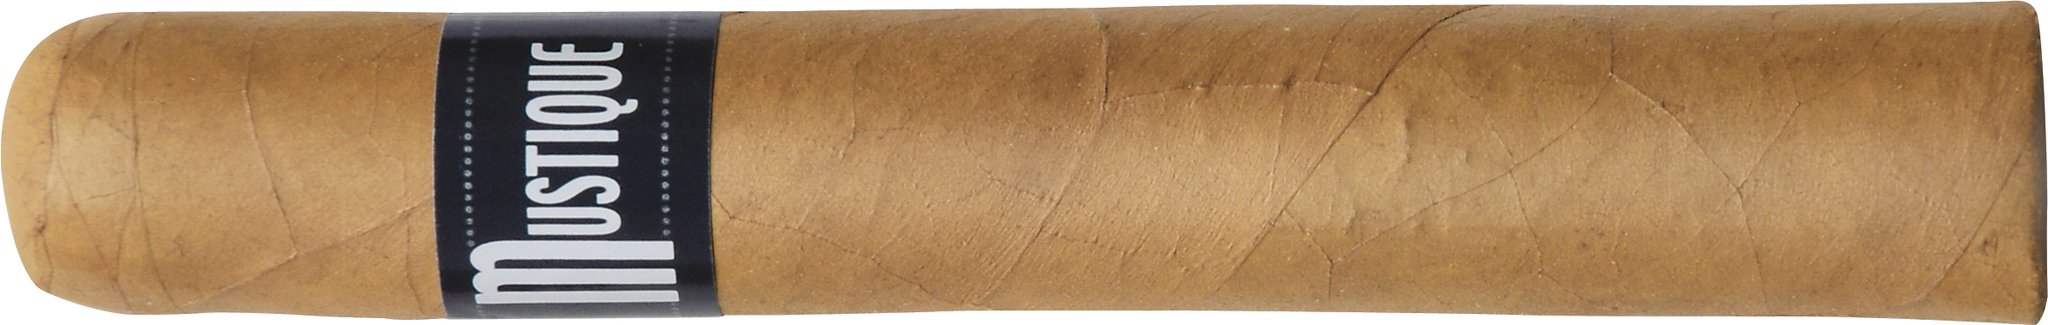 Mustique BLUE Robusto